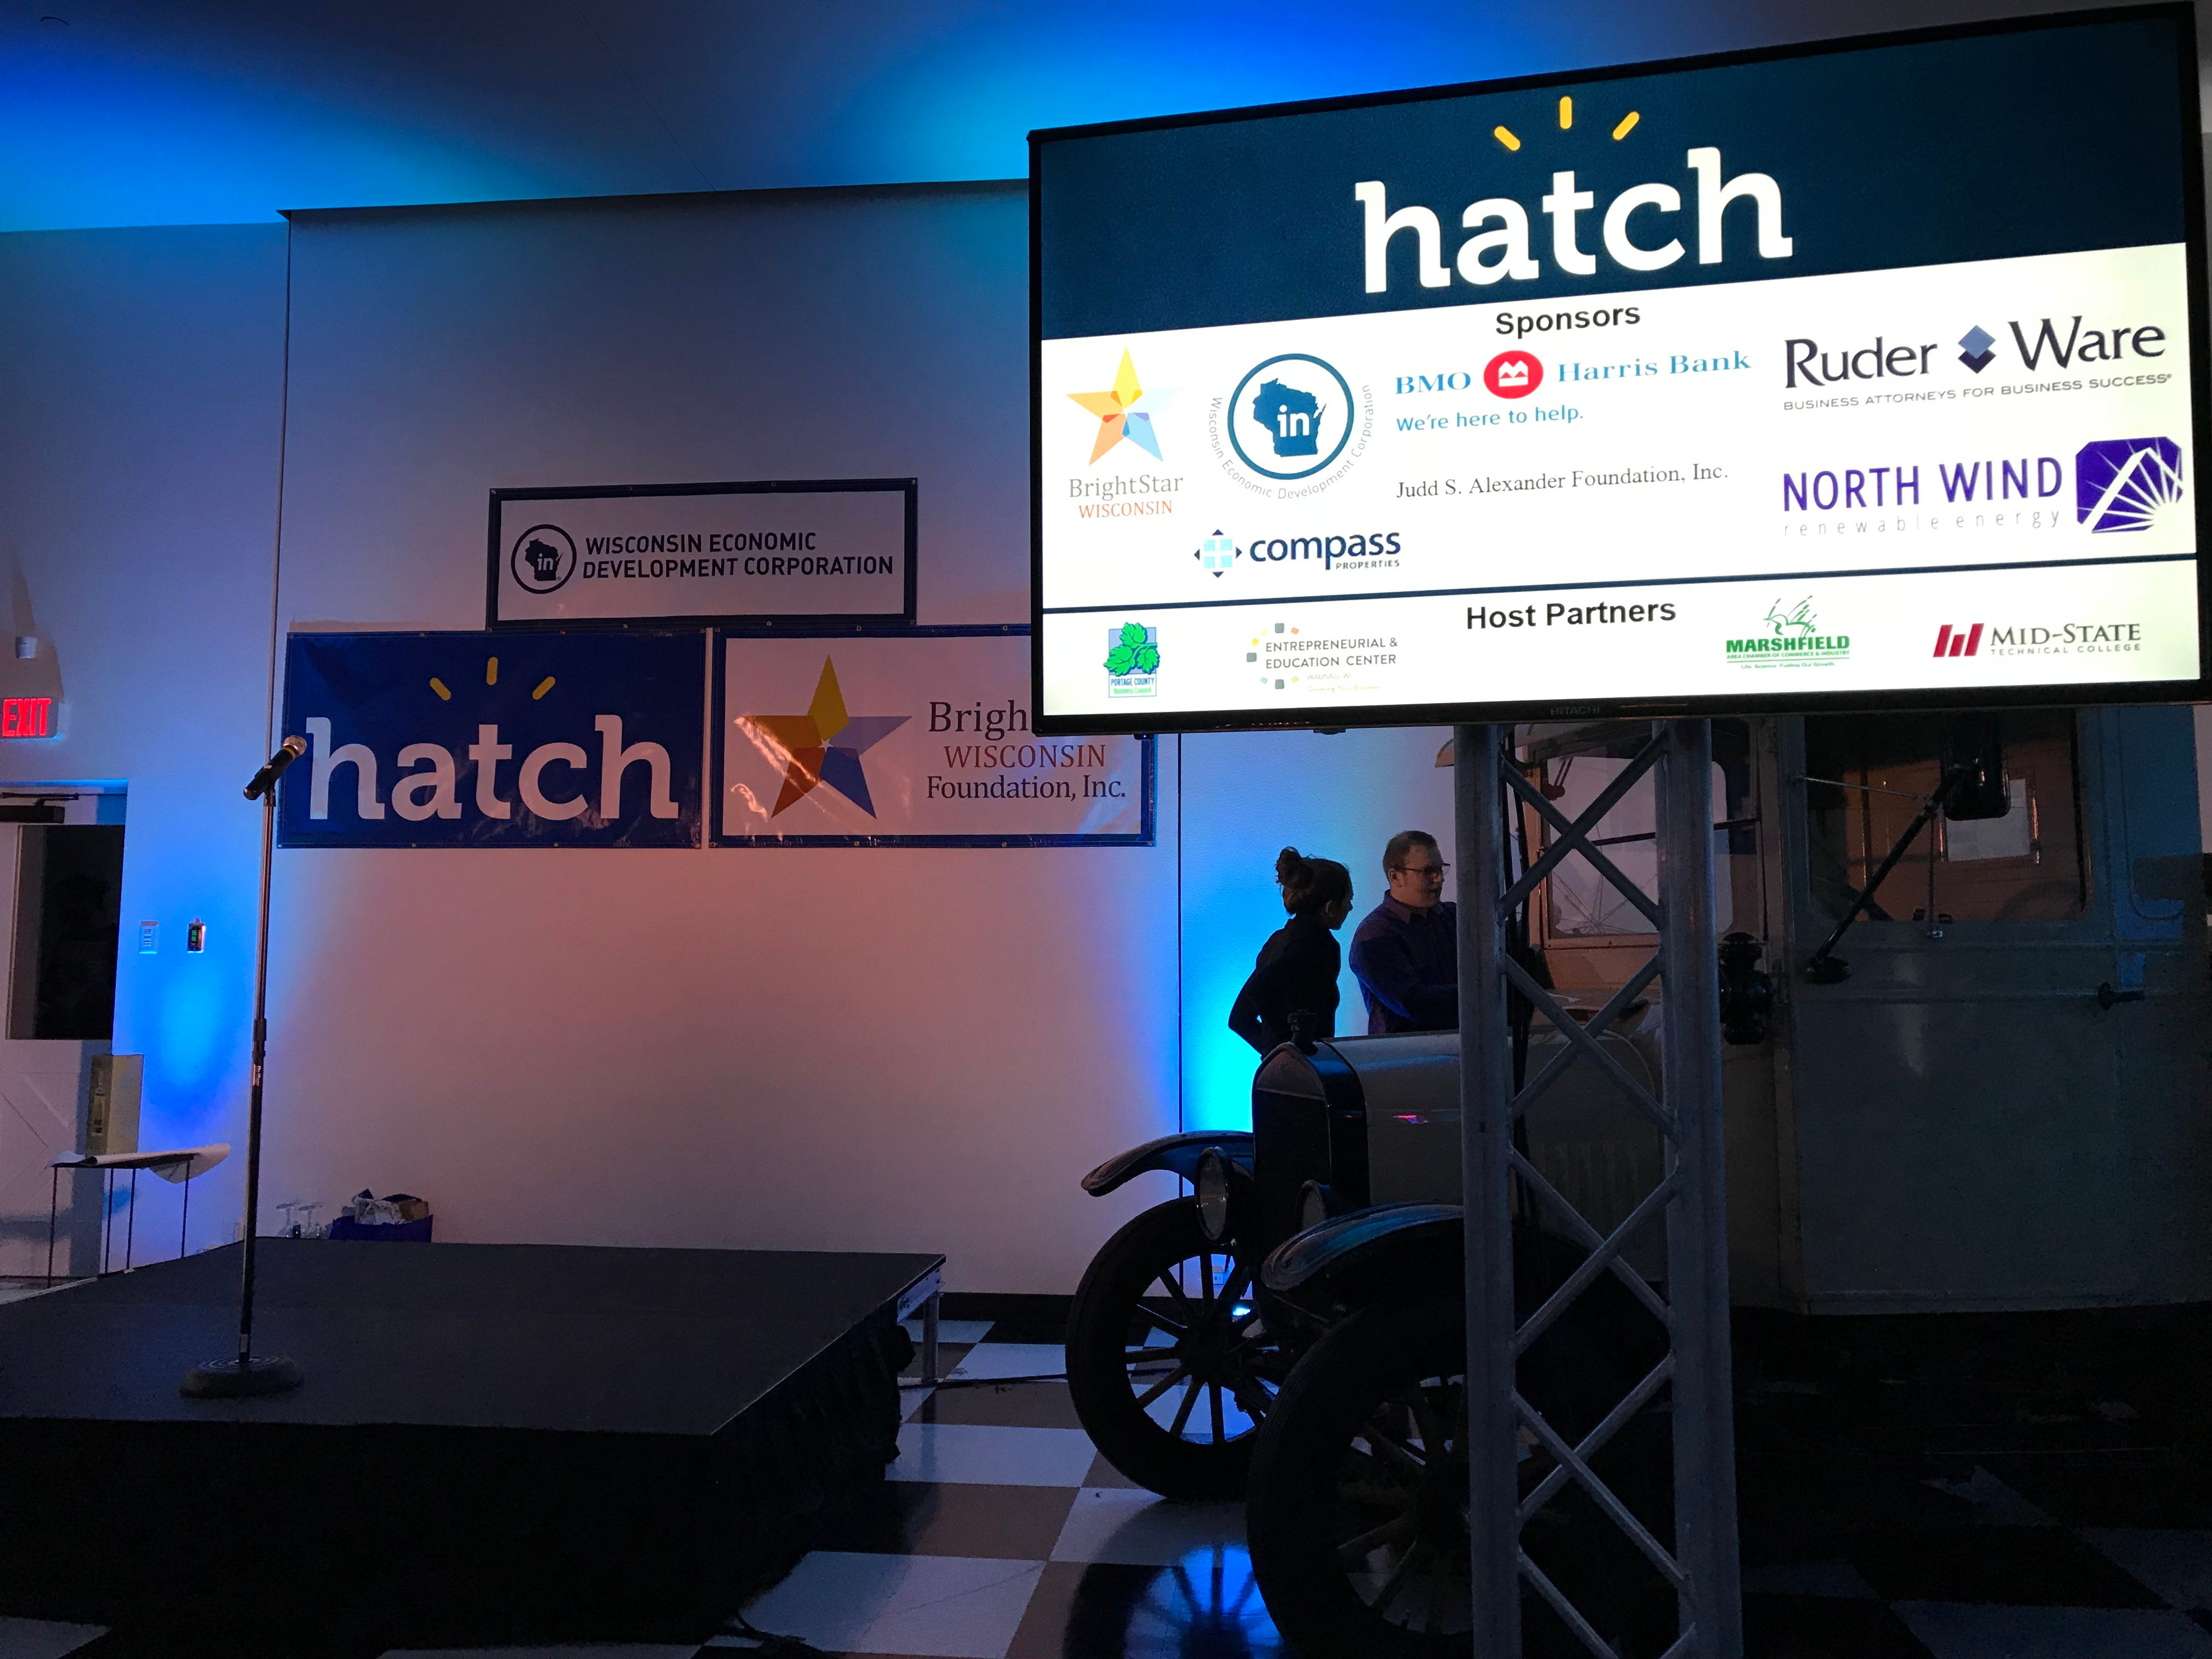 Six entrepreneurs prepared to present on the stage at the Hatch finale in central Wisconsin.